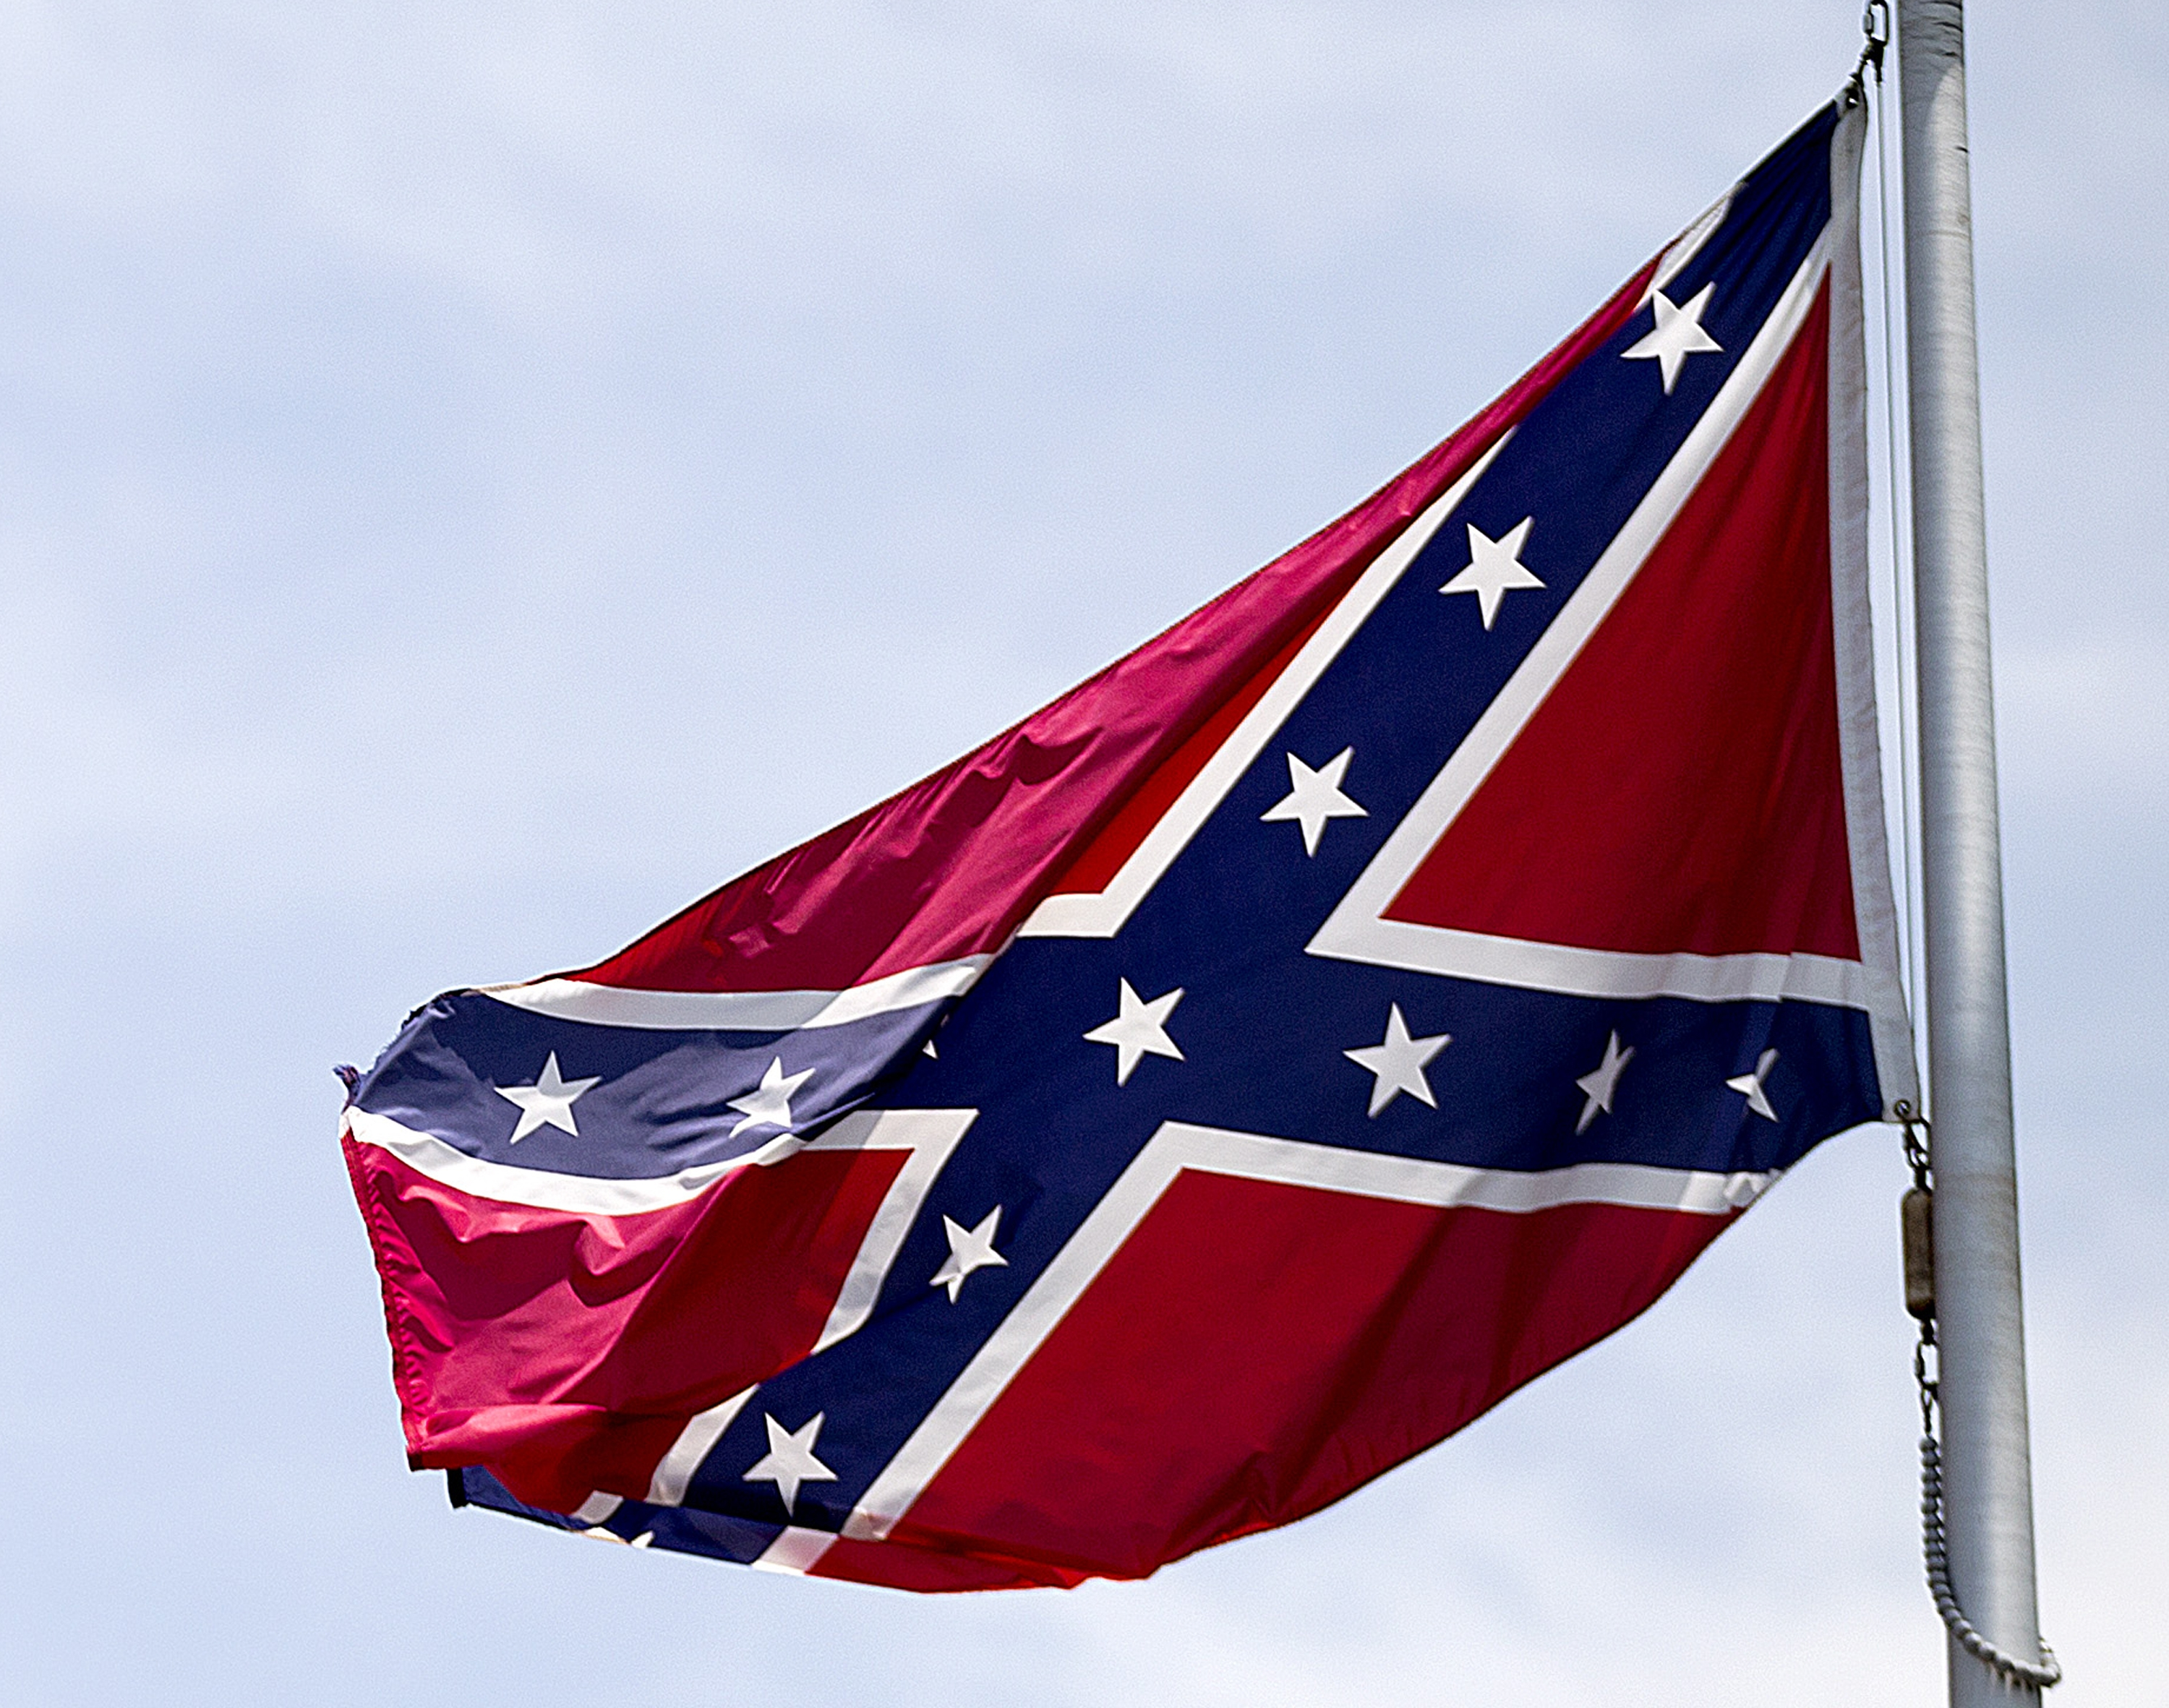 Lawsuit filed over ban of Confederate flag from Van Buren parade